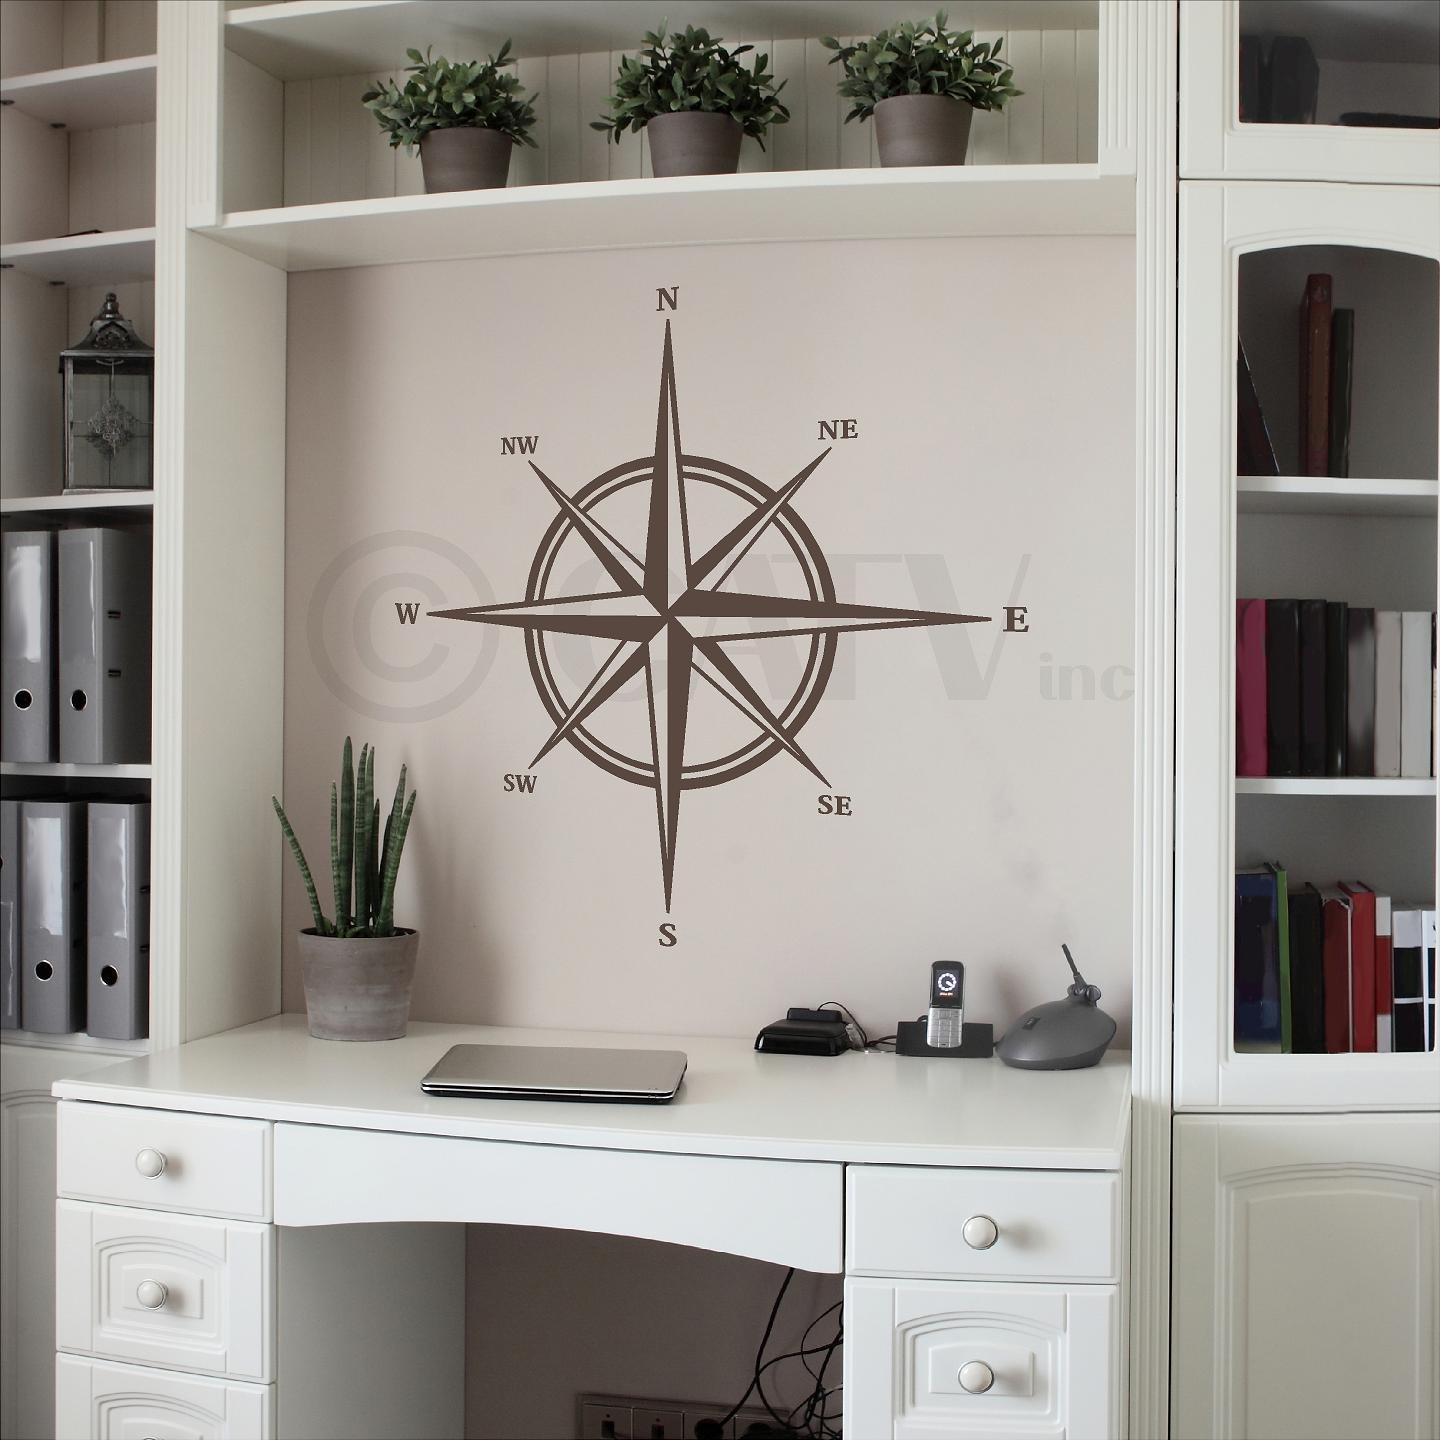 Compass vinyl wall decal sticker (22''H x 22''W, Metallic Bronze) by Wall Sayings Vinyl Lettering